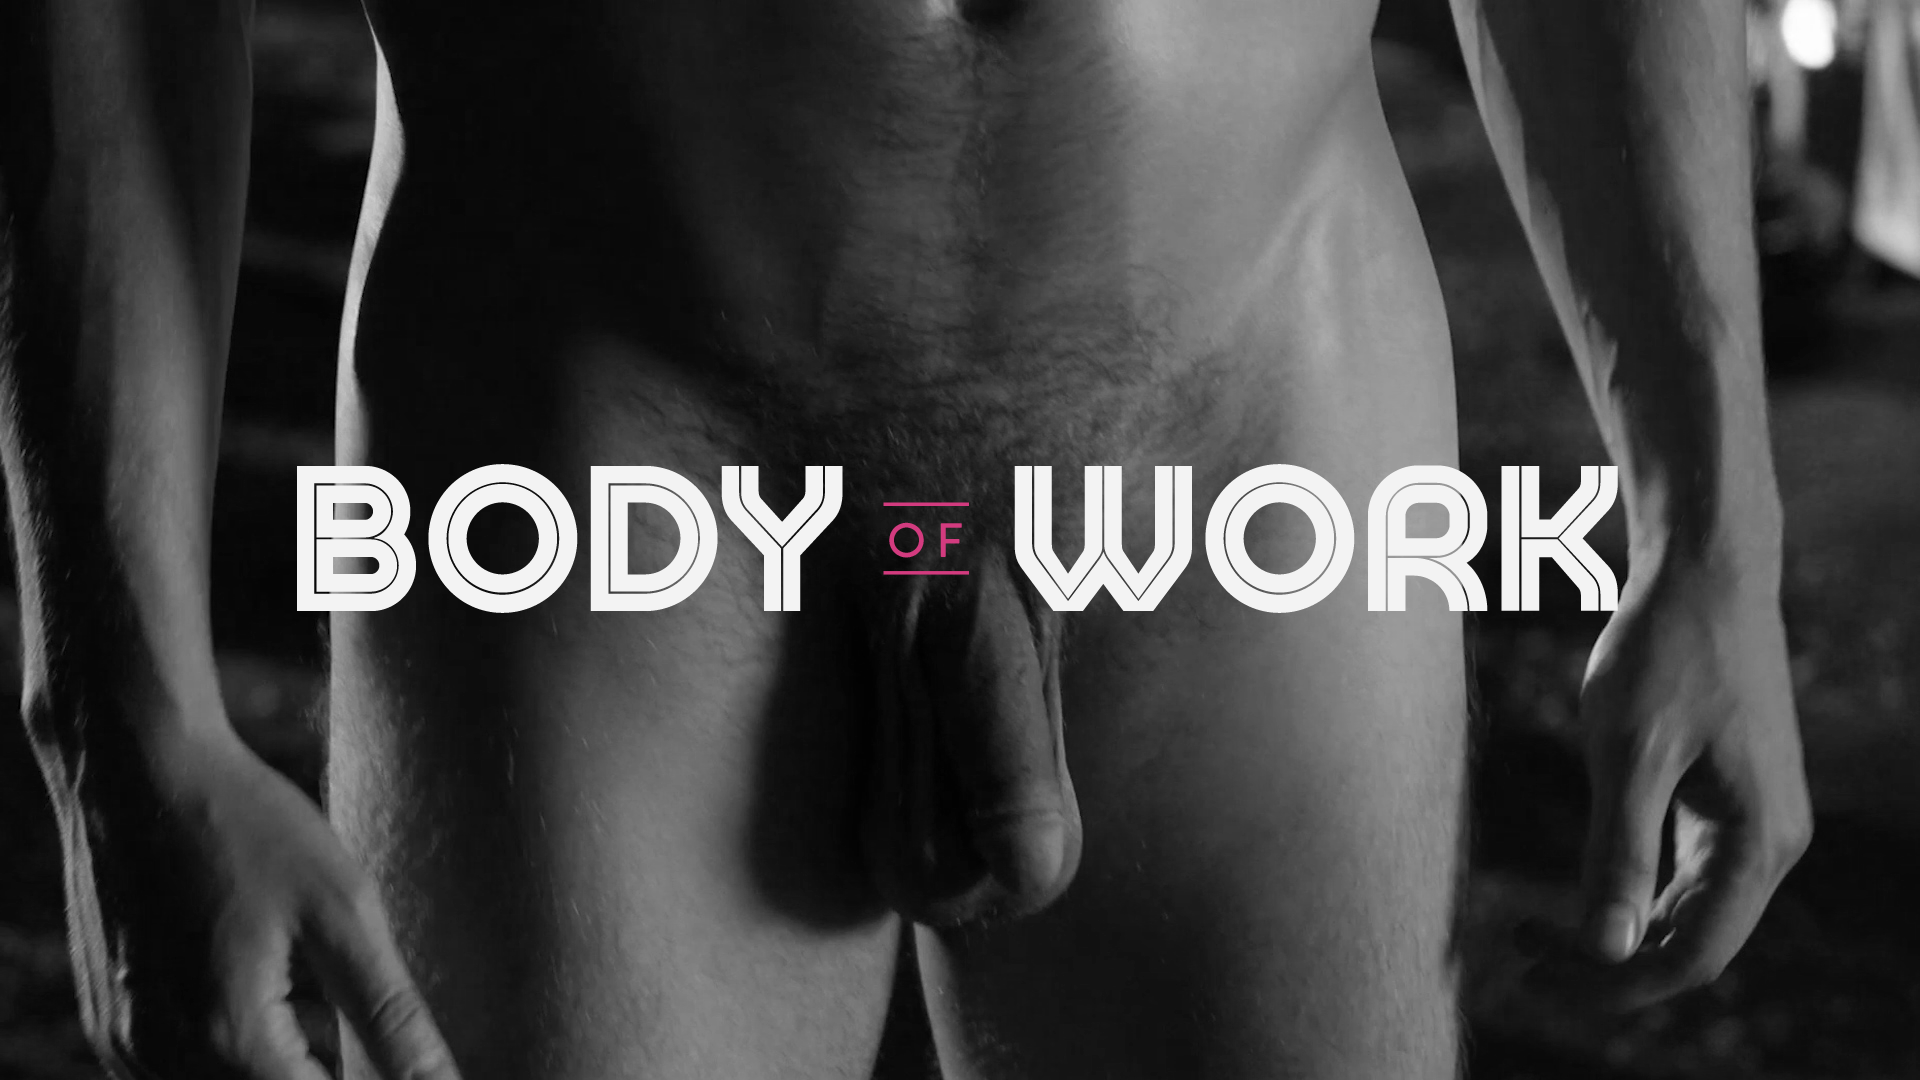 Bodyofwork maxriemelt 00 00 02 08 still002 nude preview image